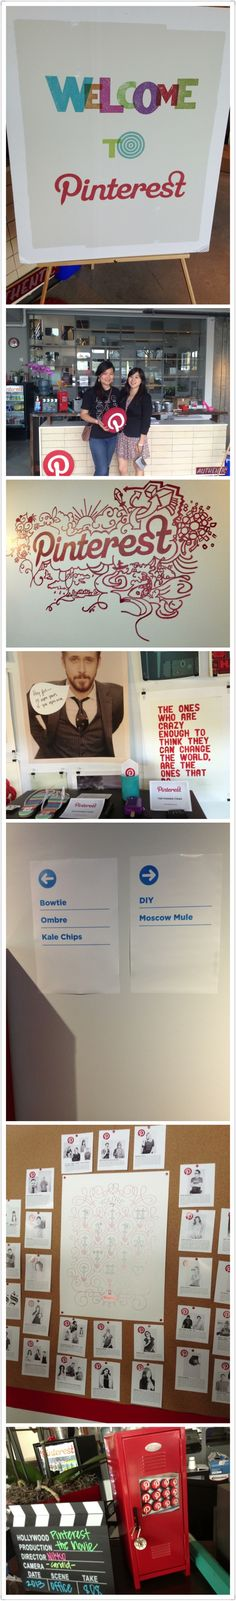 The inspiring & crafty @Pinterest office with @Katherine Chen (thanks to Kat's friend Leon)